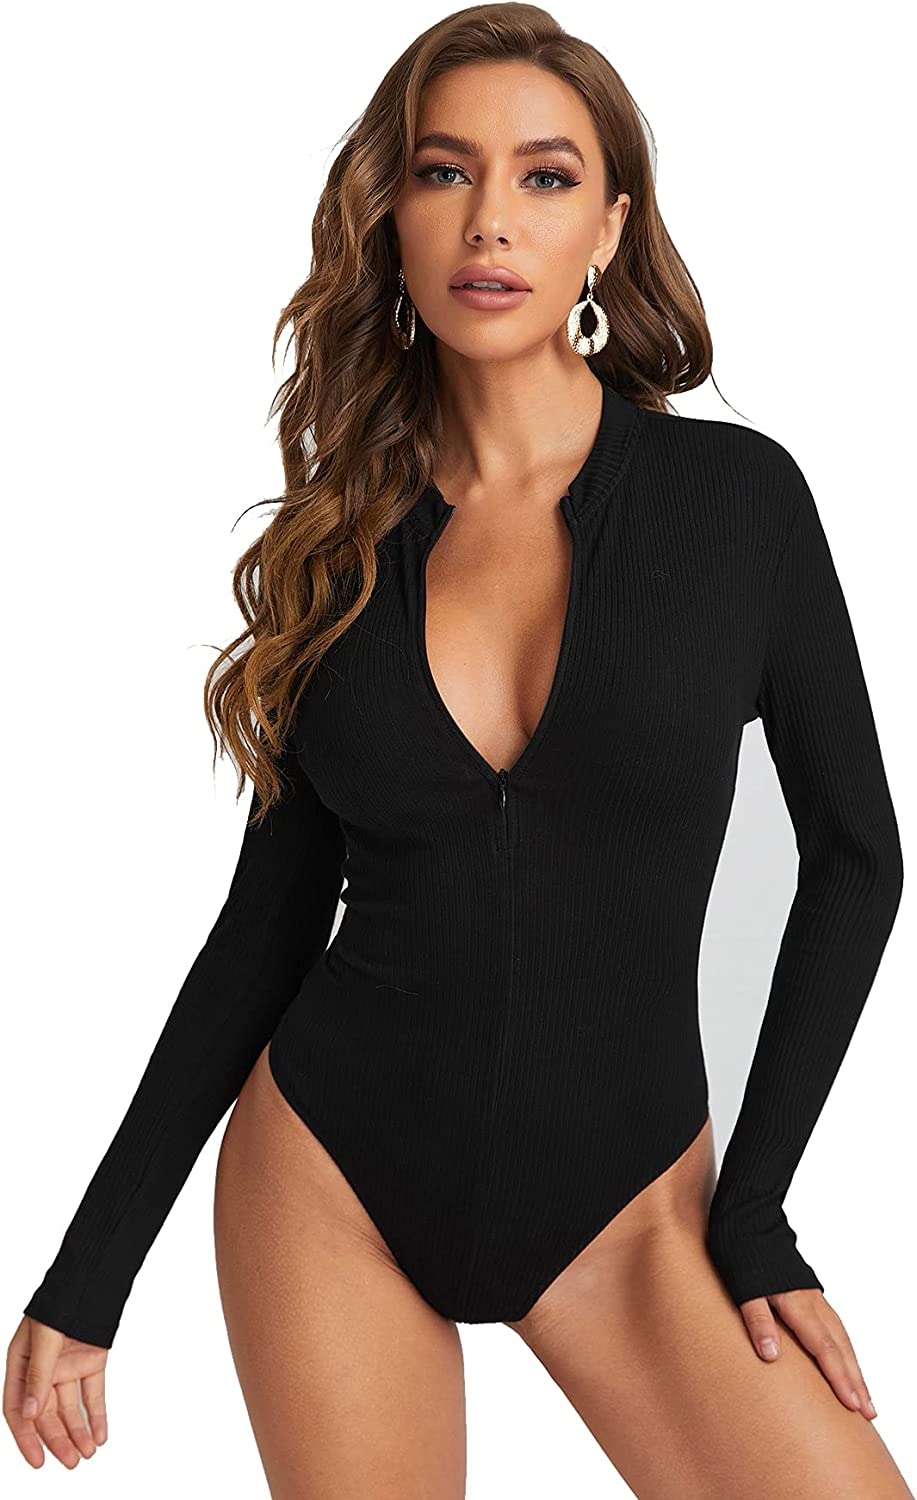 SheIn Women's Casual Notched Neck Long Sleeve Zip Up Rib Knit Bodysuit Tops